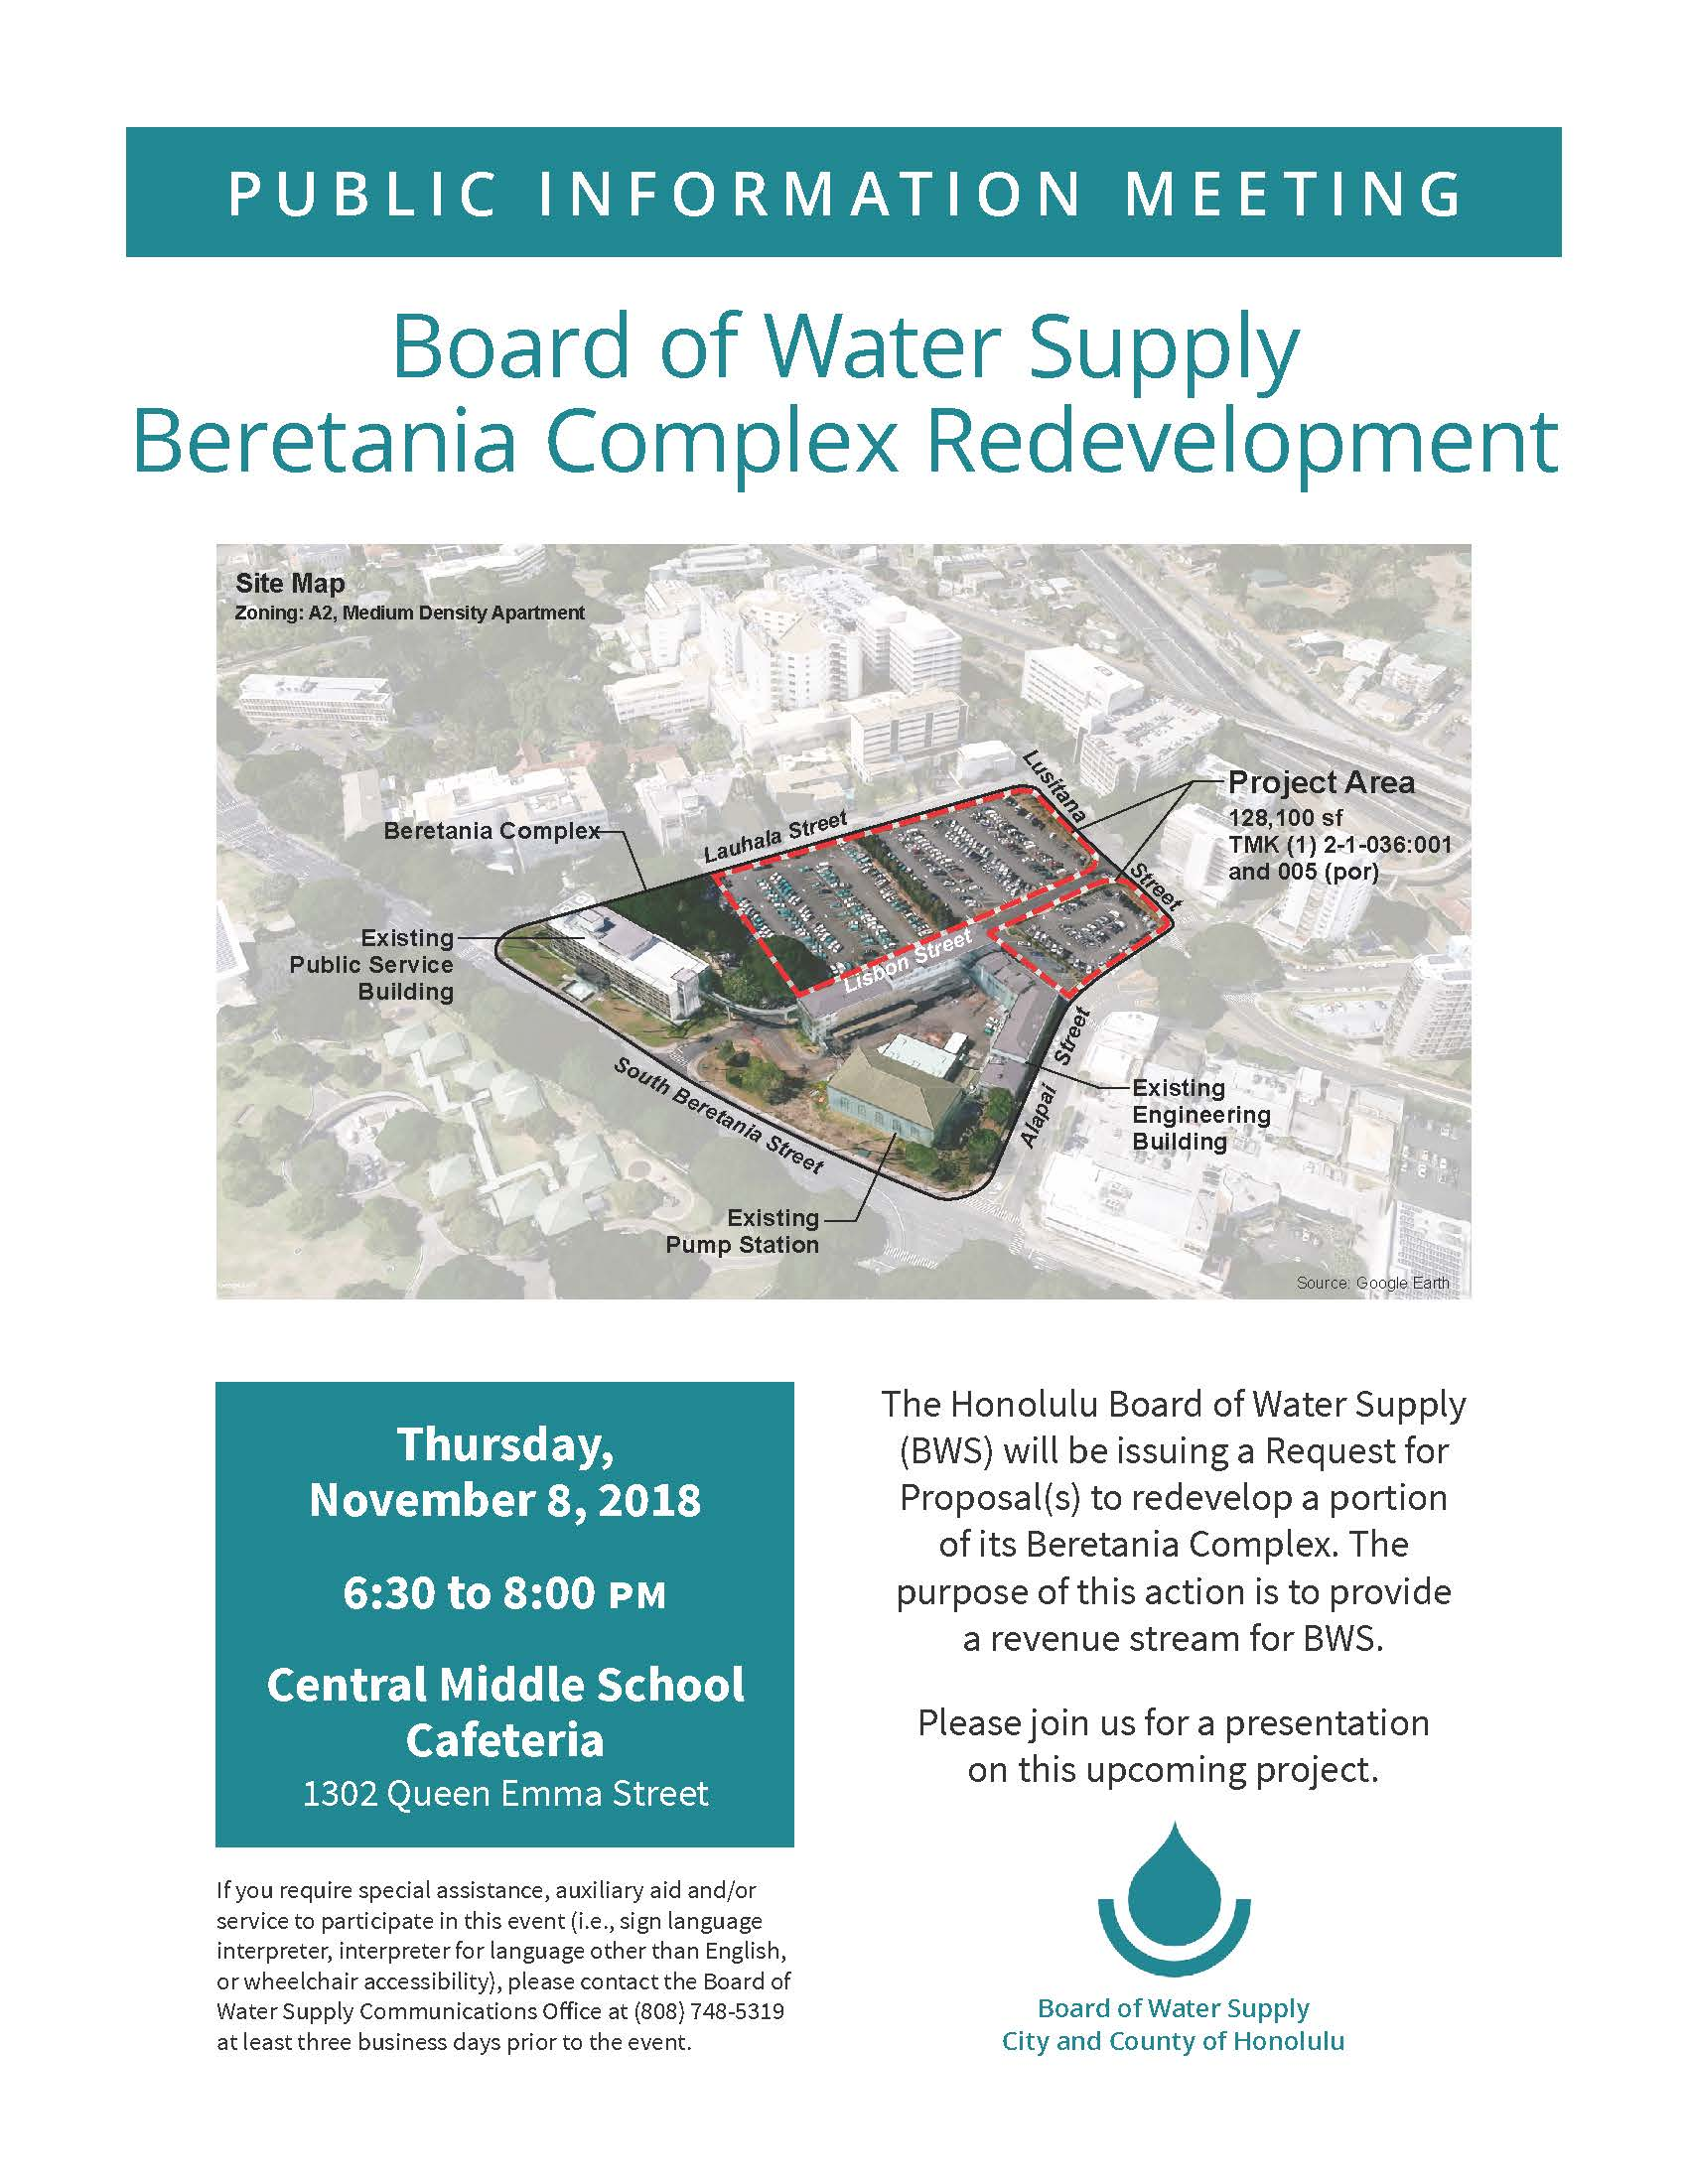 beretania redevelopment public information meeting